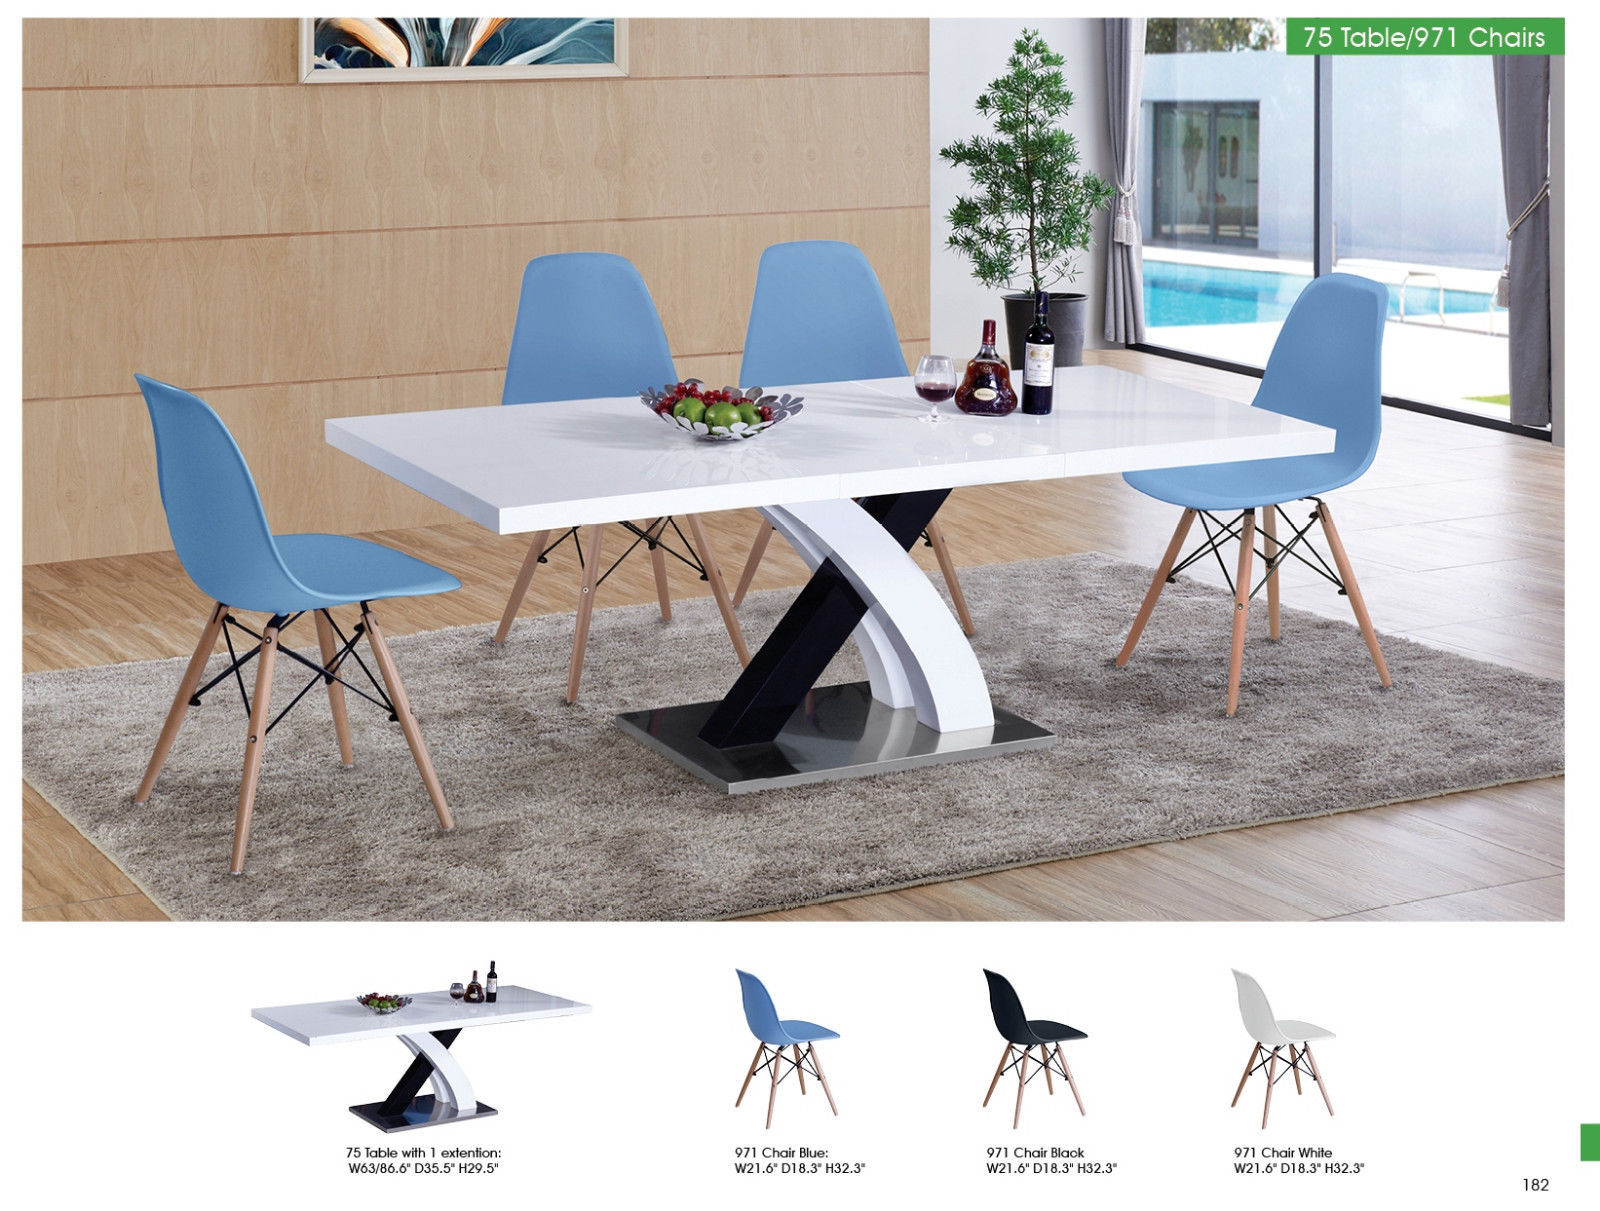 ESF 75 Table and 971 Side Chairs Dining Room Set 5pc. Blue Modern Casual Style